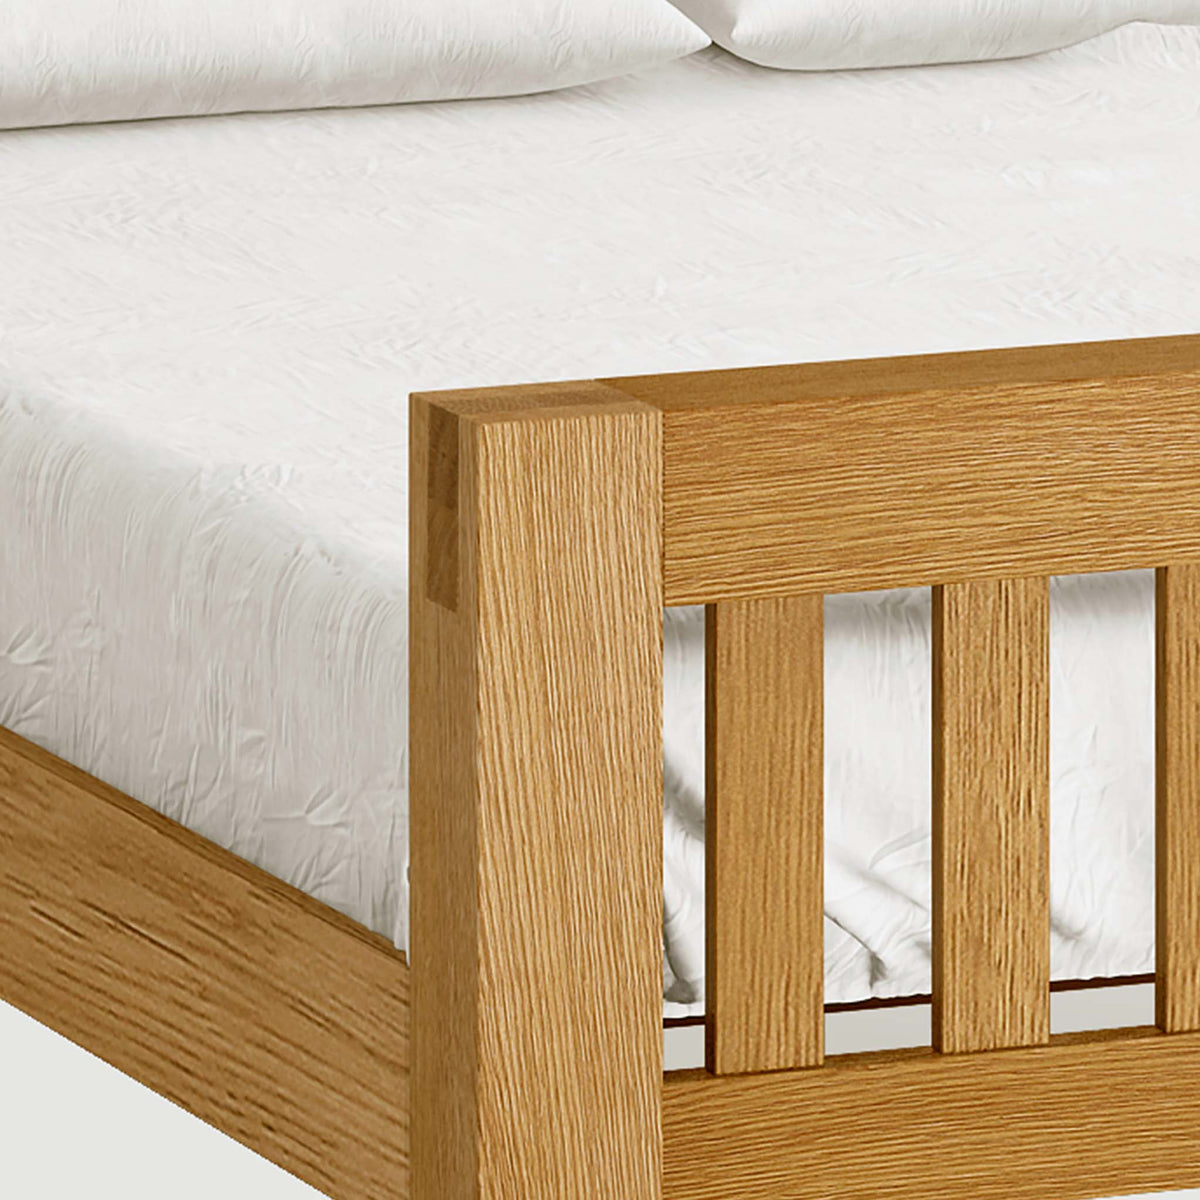 The Abbey Grande Wooden Oak Bed Frame Double or King Size - Close Up of Tenon Joints